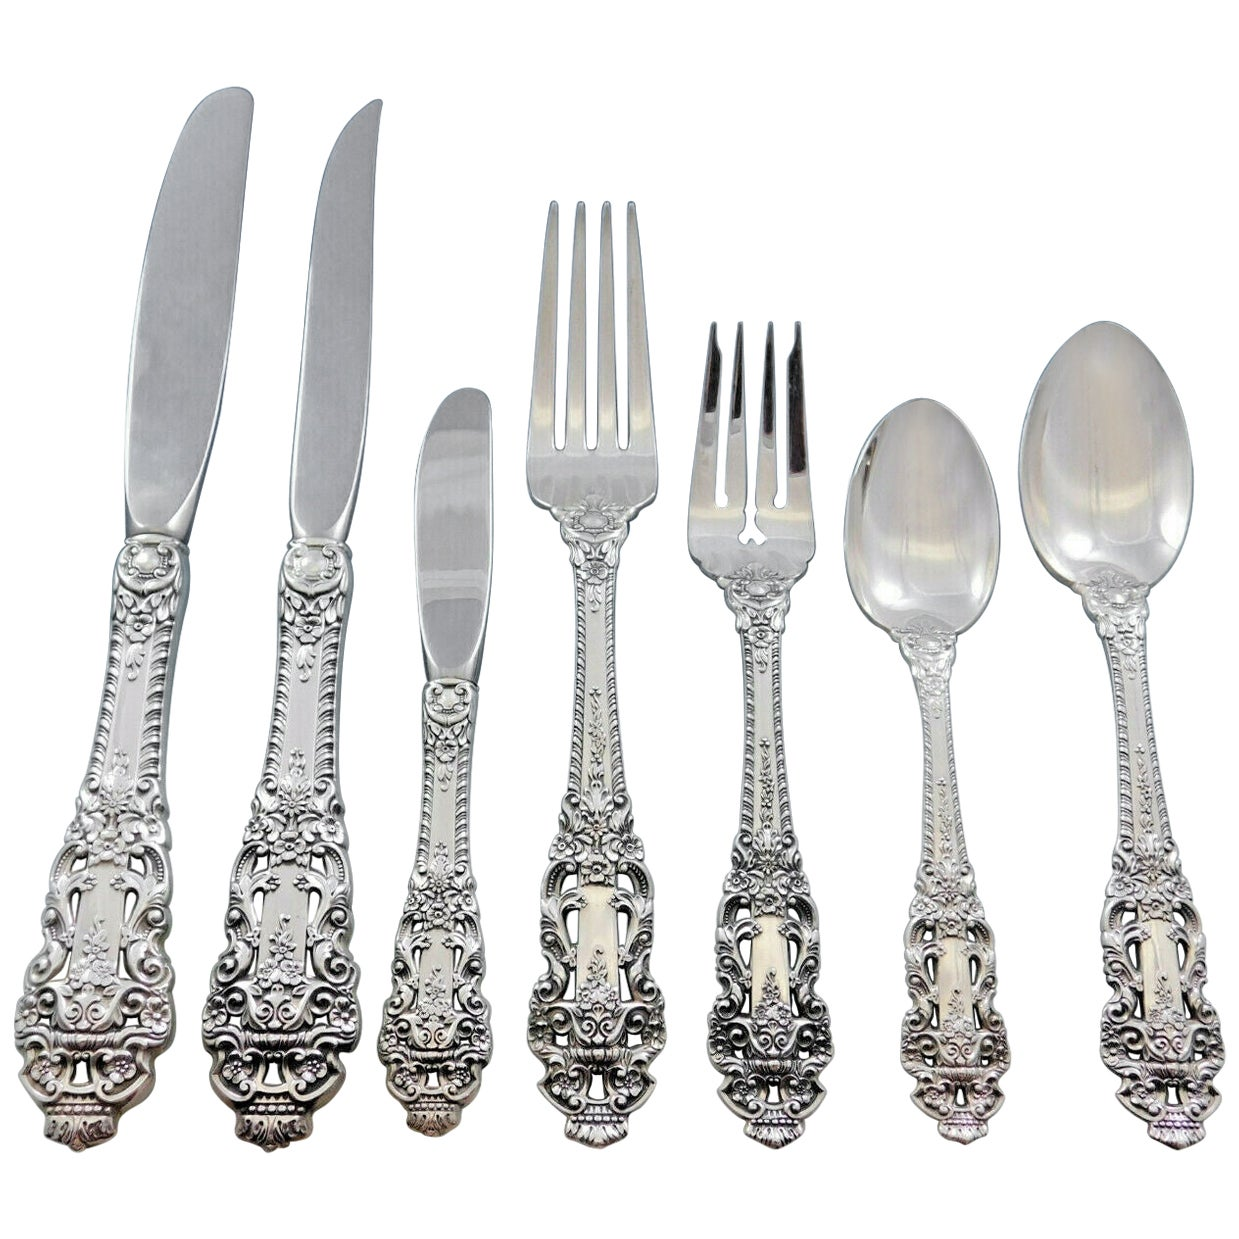 CROWN BAROQUE Gorham Sterling Silver Flatware No Monogram Teaspoon s